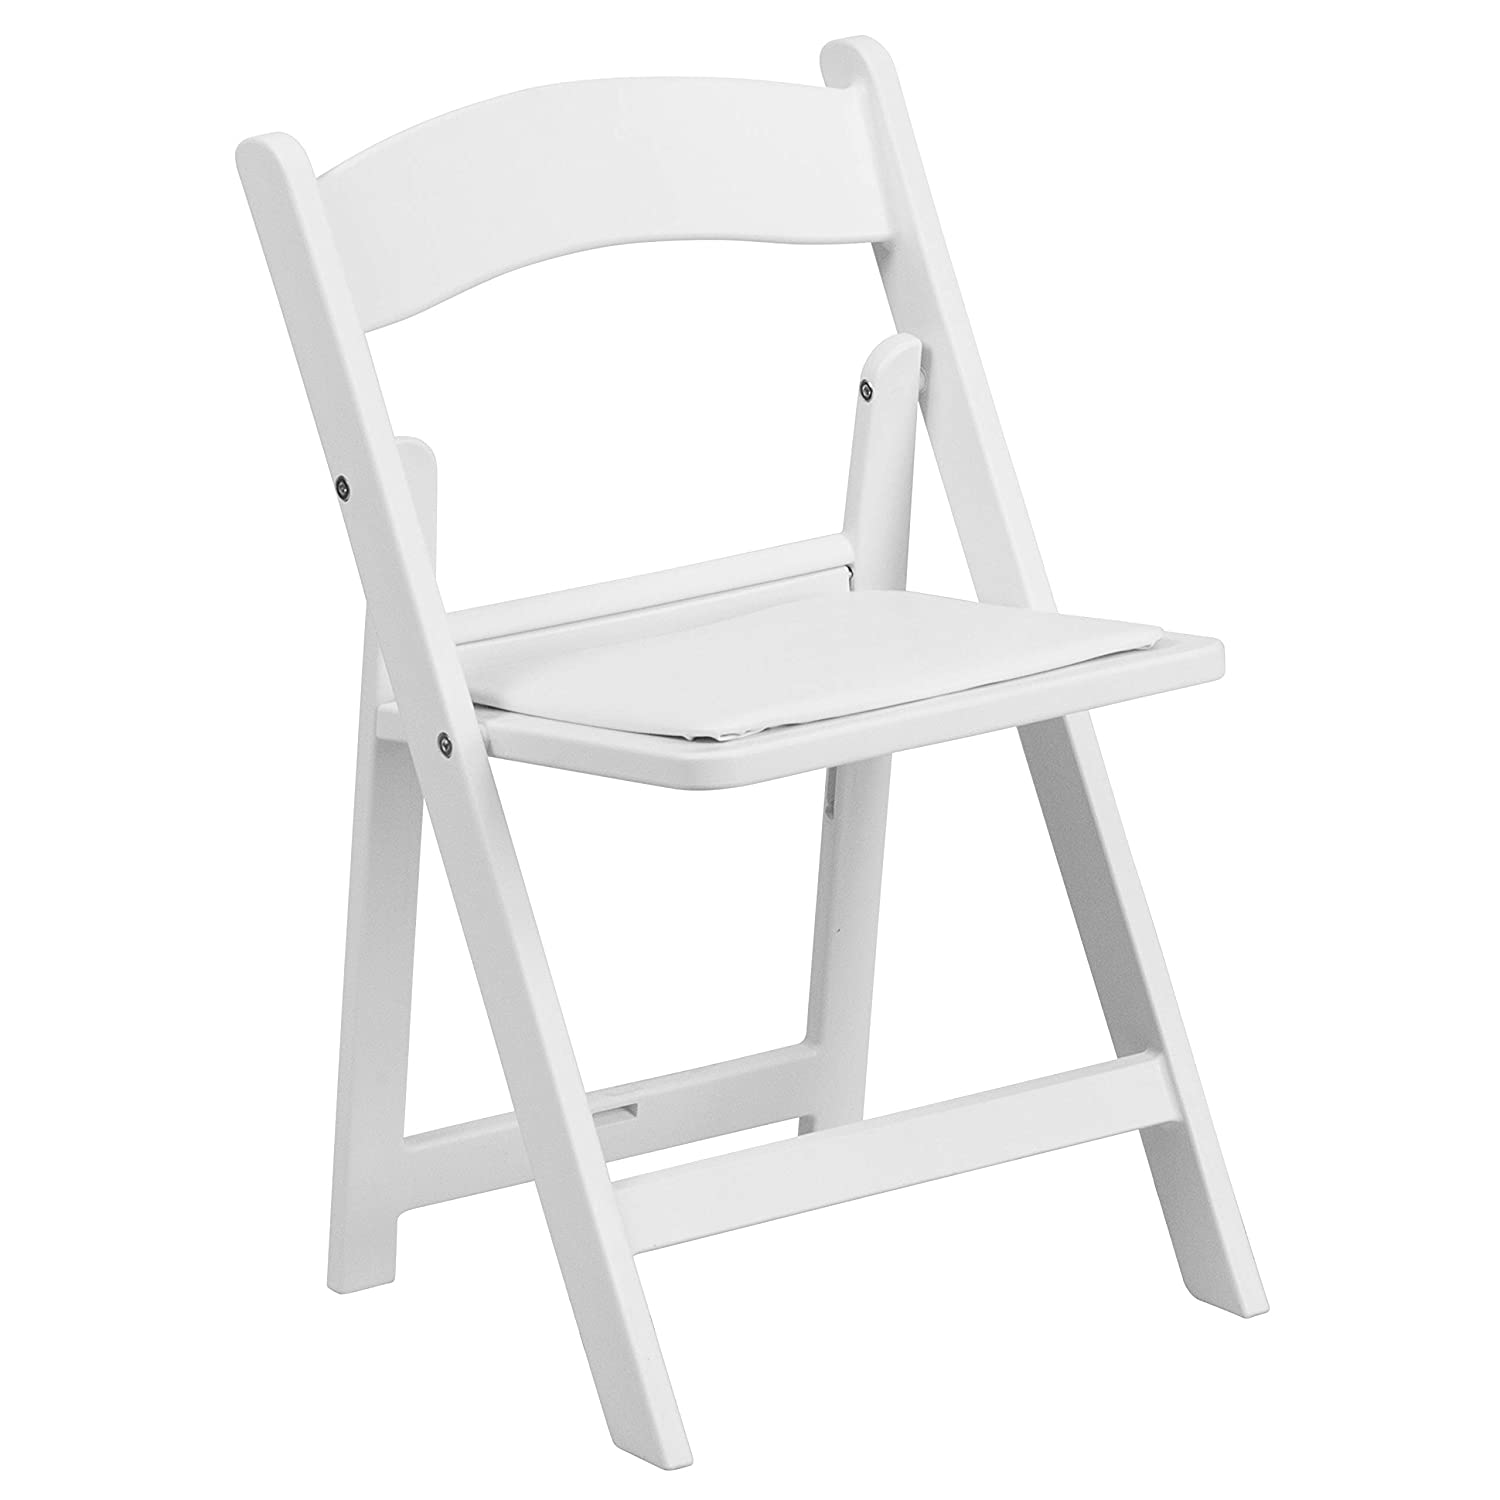 Excellent Flash Furniture Kids White Resin Folding Chair With White Vinyl Padded Seat Squirreltailoven Fun Painted Chair Ideas Images Squirreltailovenorg